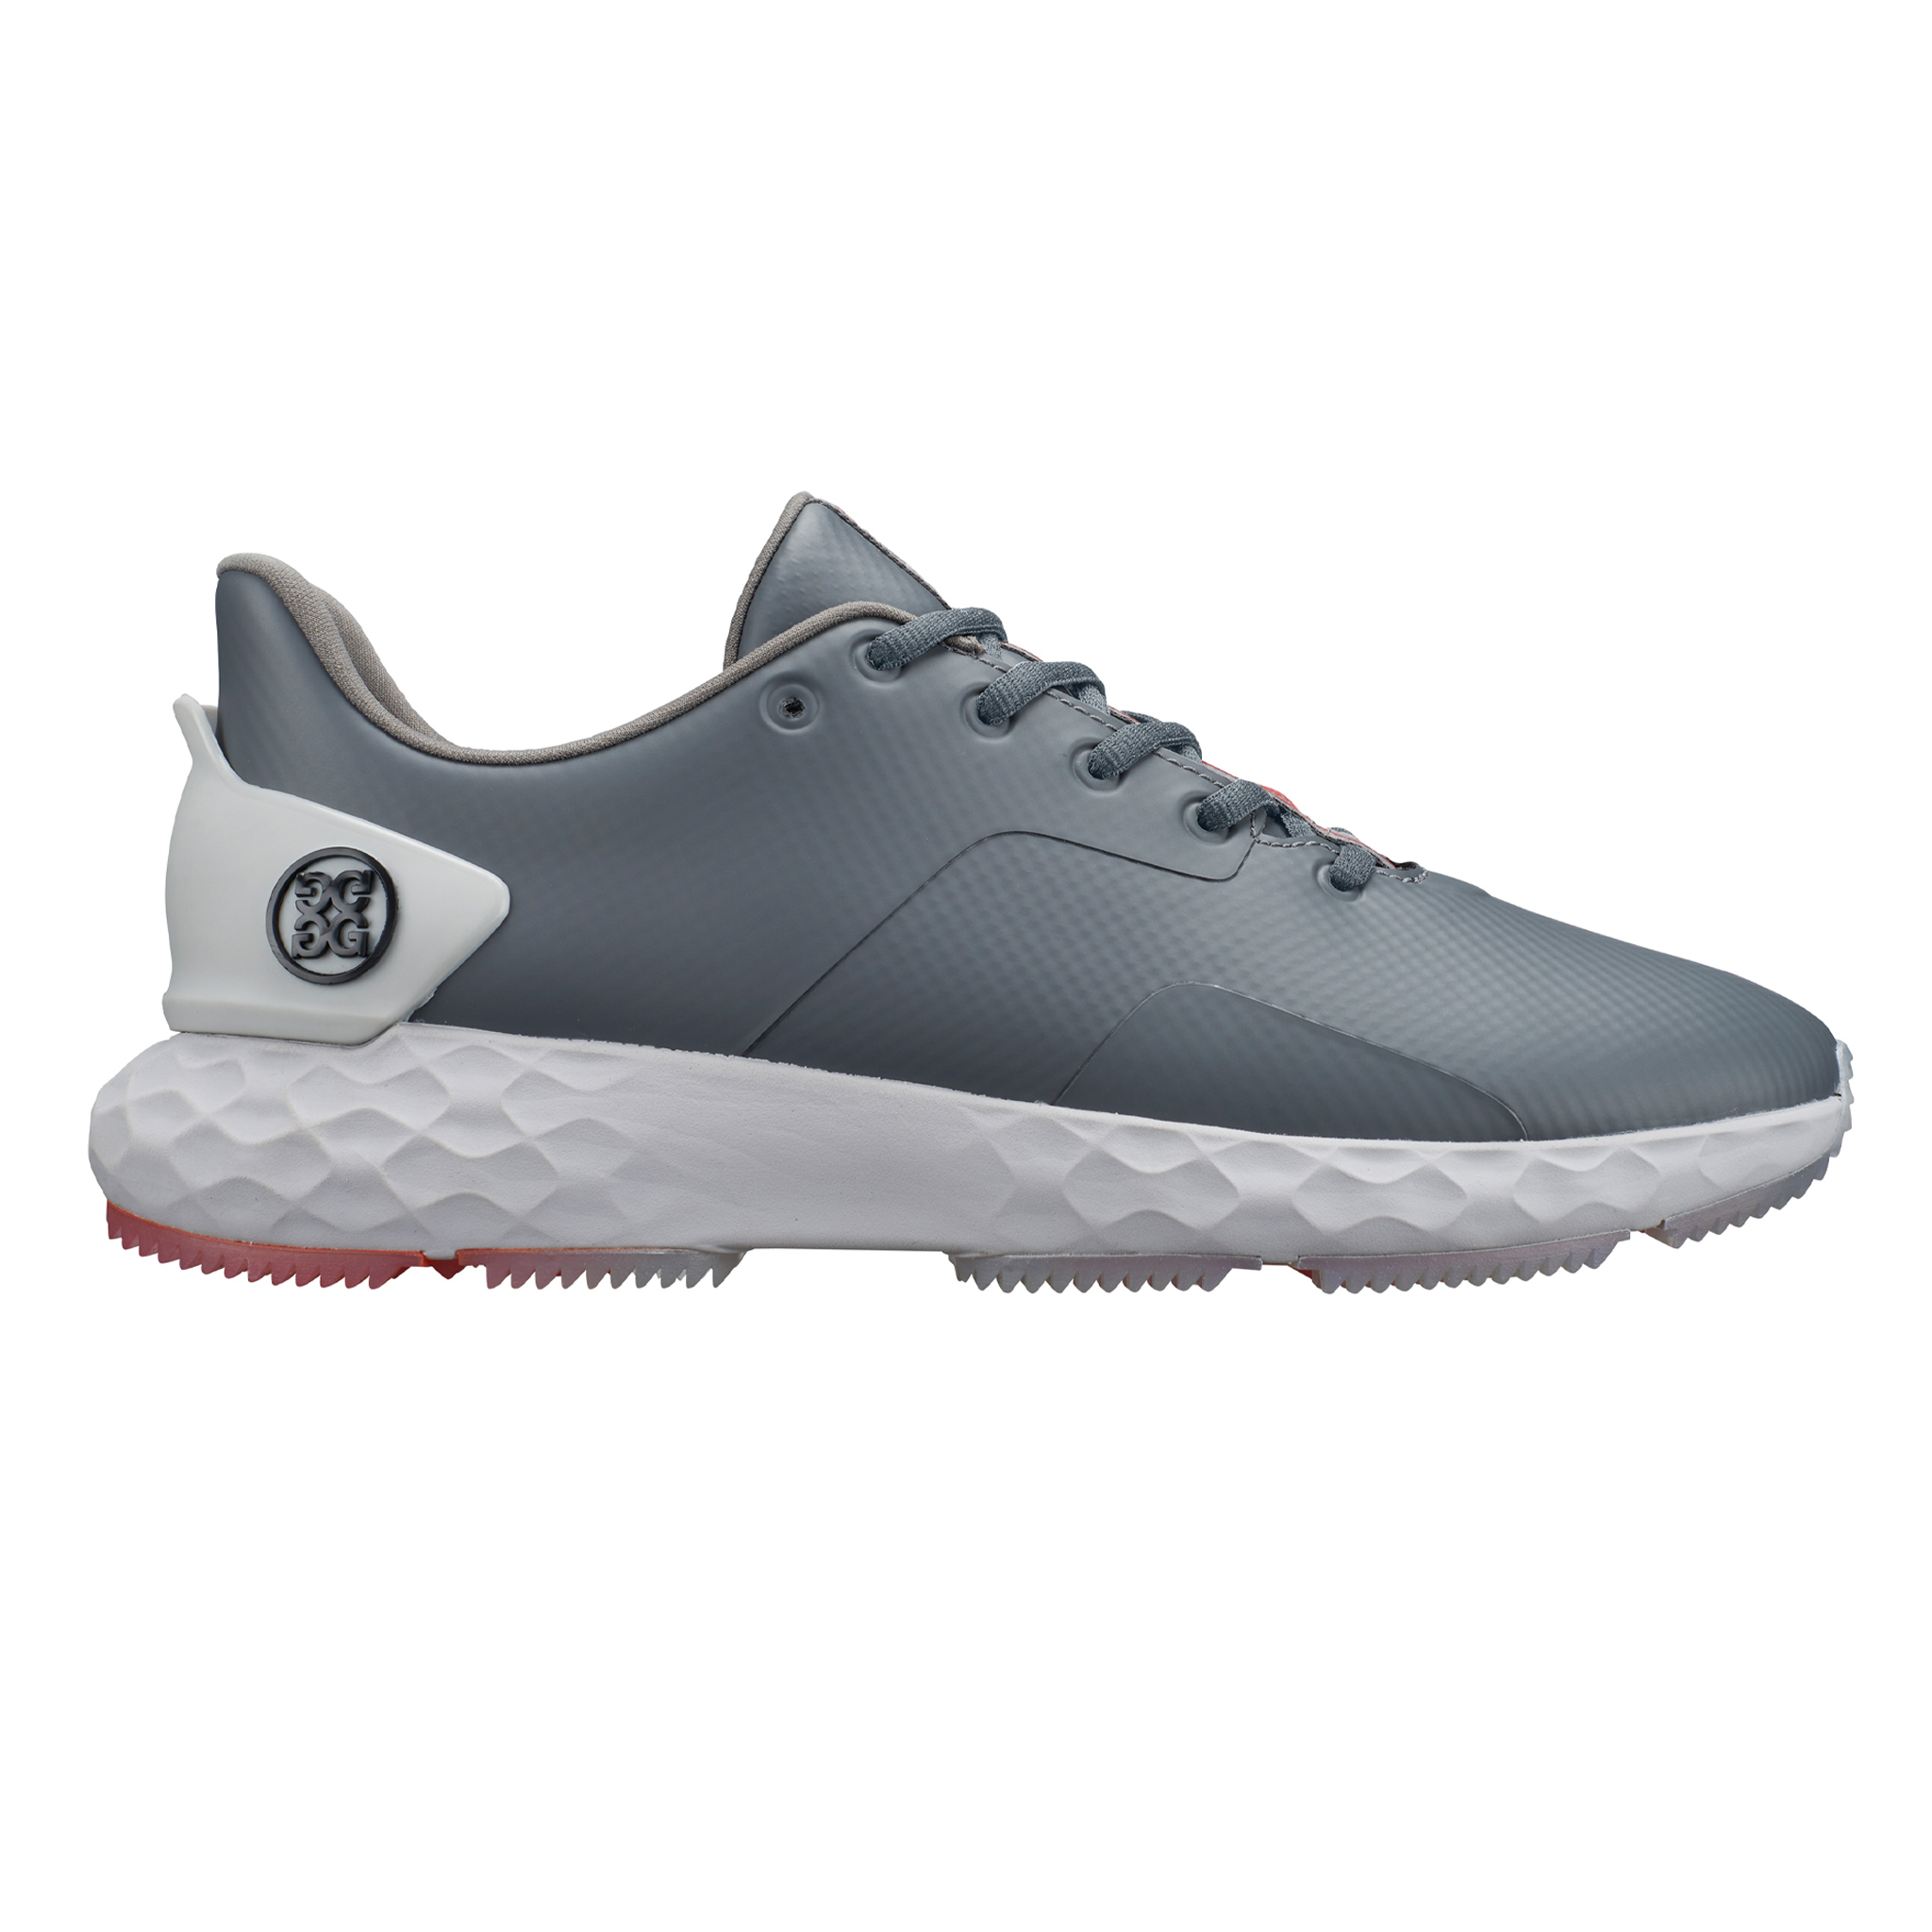 G/FORE MG4+ Golf Shoe   PGA TOUR Superstore